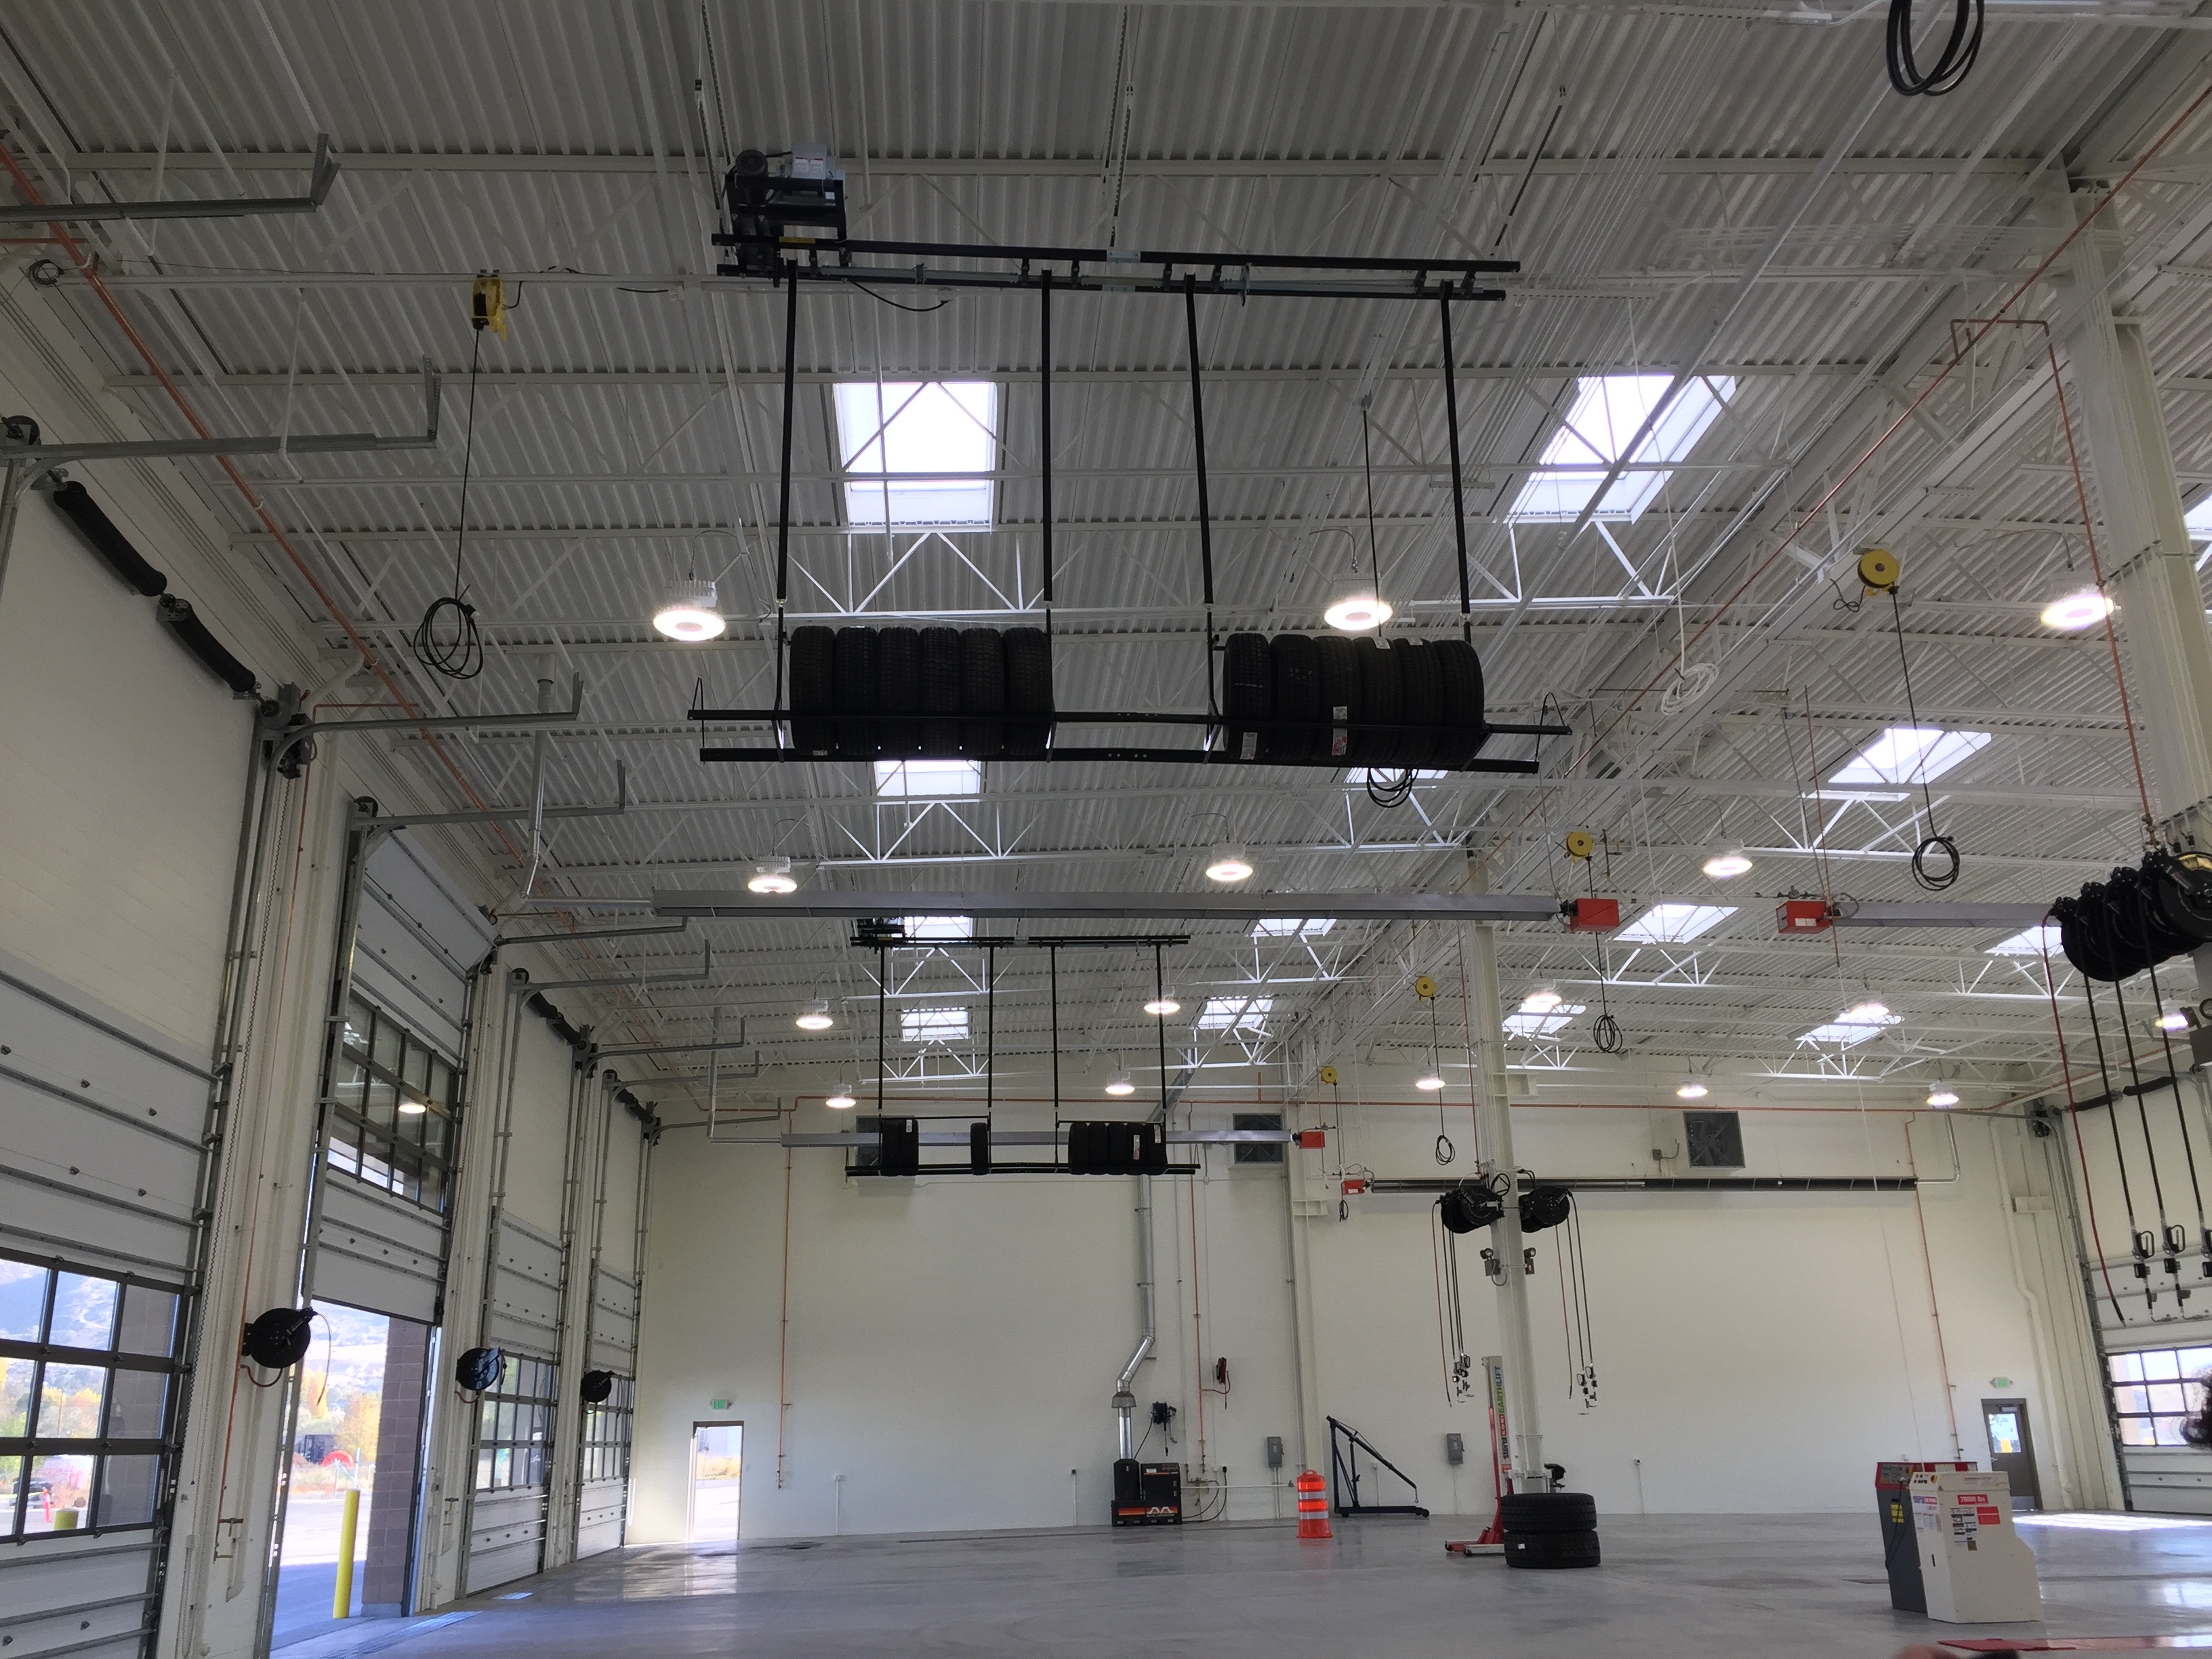 Overhead Tire Lifts-Service bays